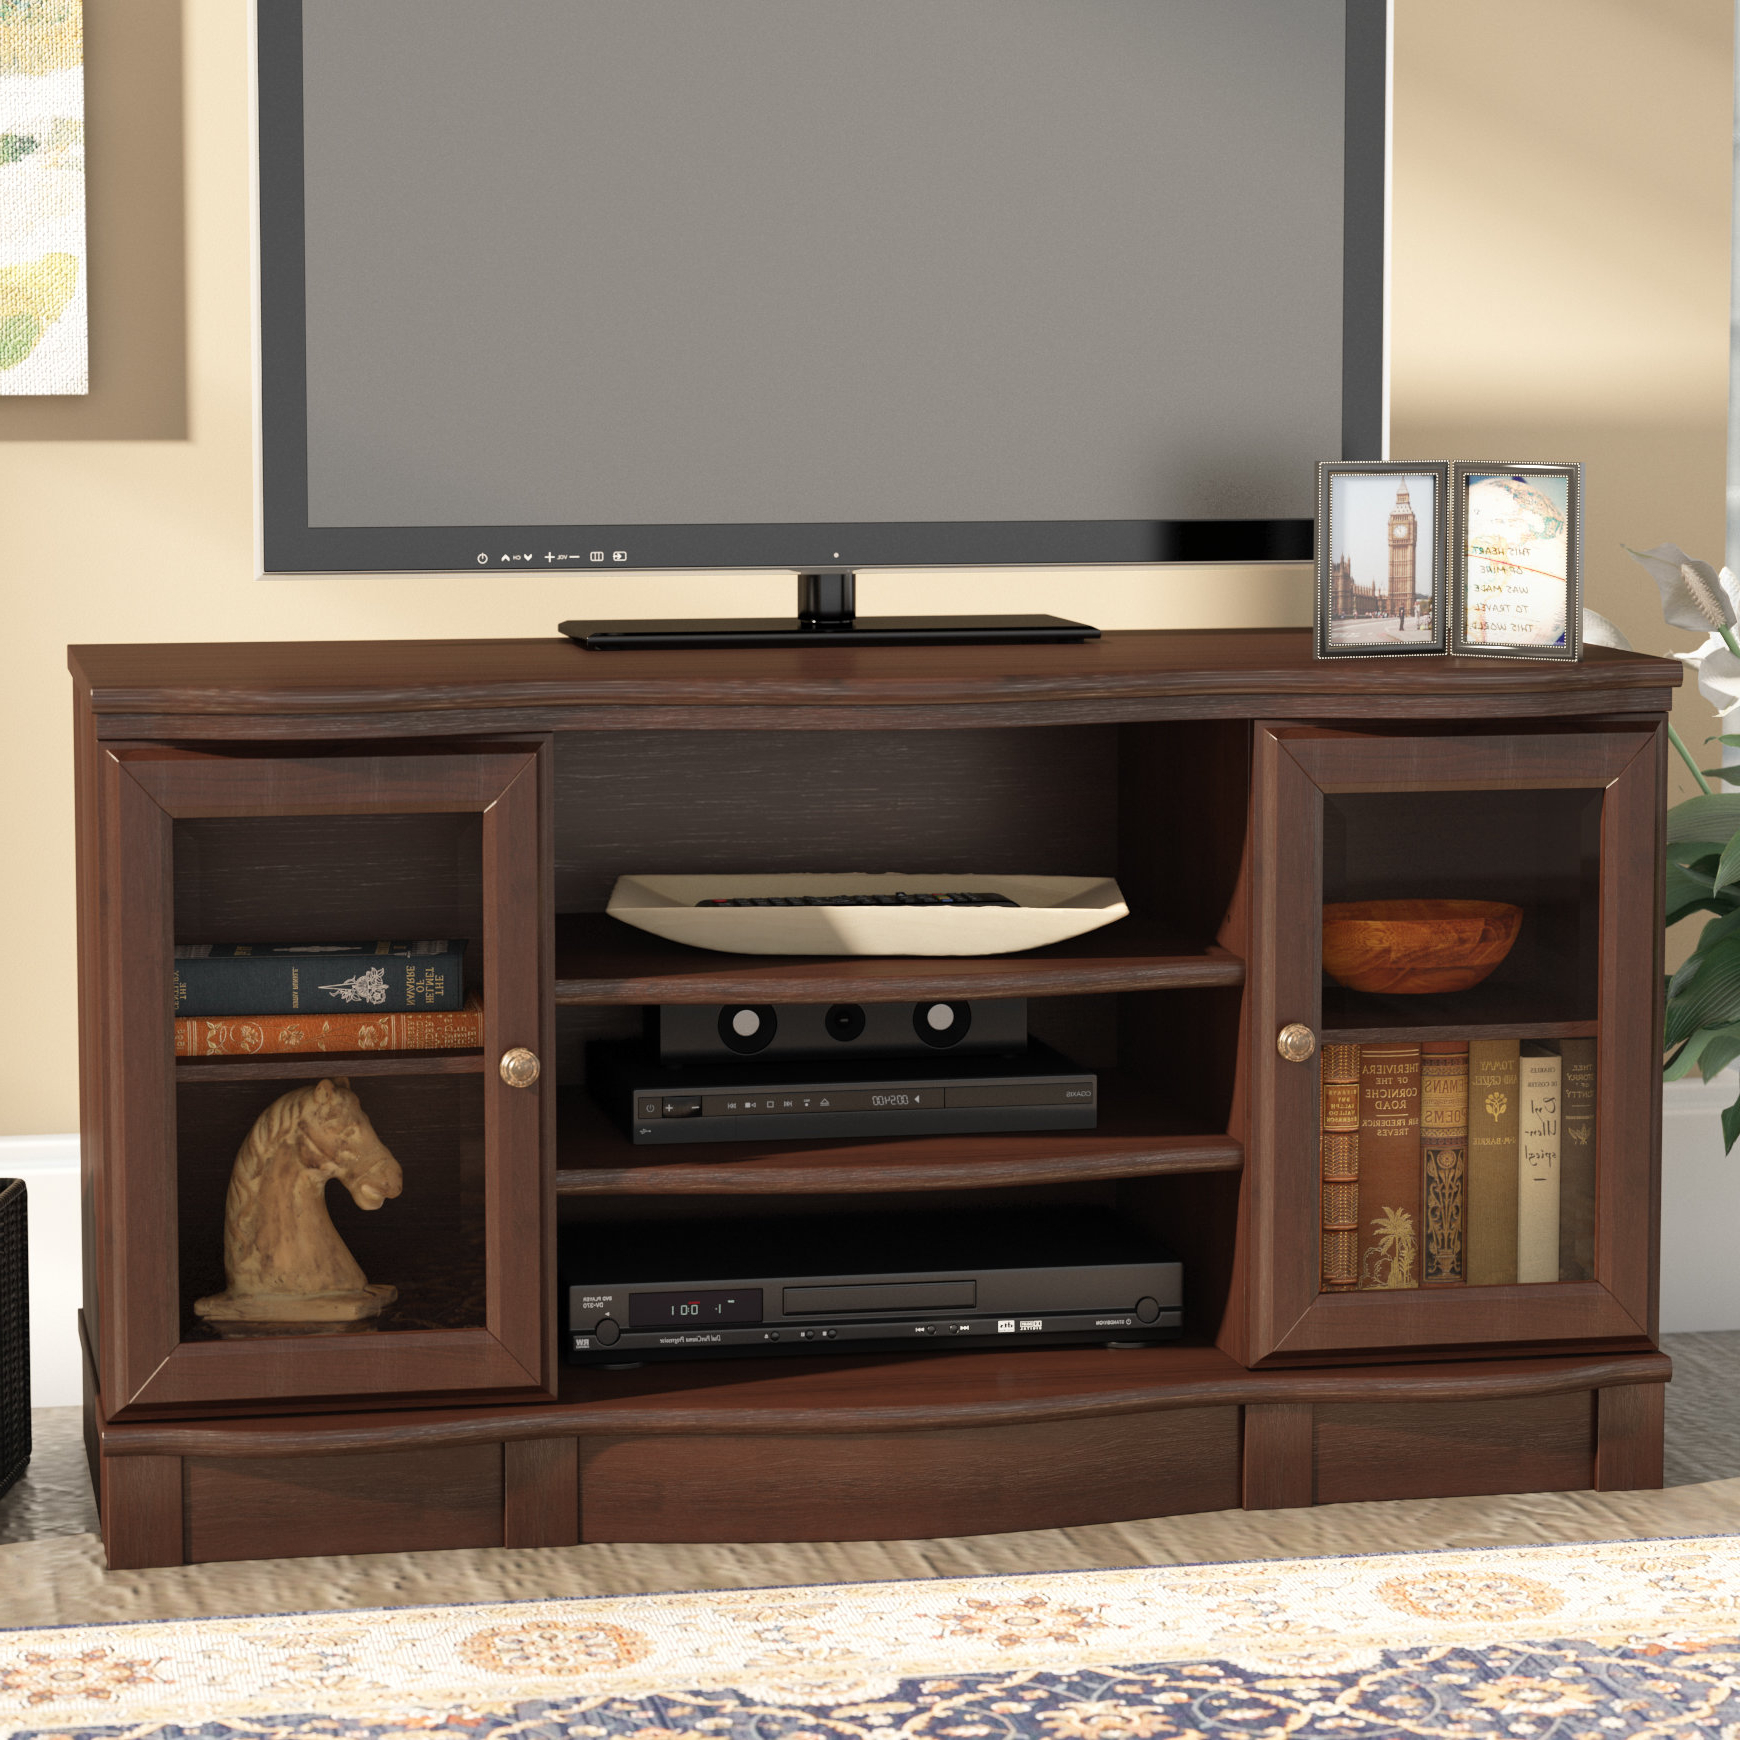 Tv Stand For 75 Inch Tv | Wayfair Pertaining To Laurent 70 Inch Tv Stands (View 14 of 20)